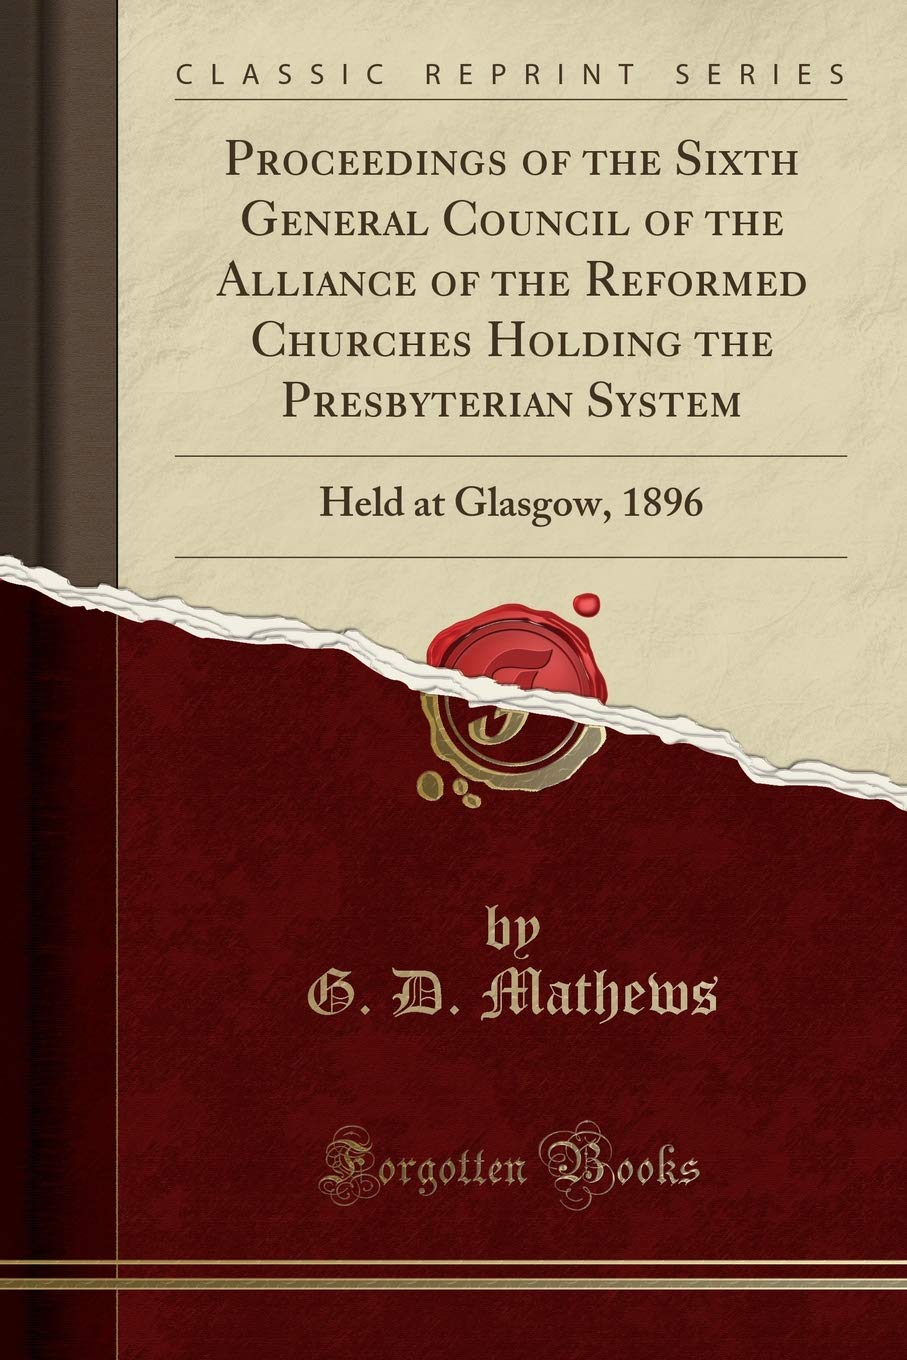 Read Online Proceedings of the Sixth General Council of the Alliance of the Reformed Churches Holding the Presbyterian System: Held at Glasgow, 1896 (Classic Reprint) PDF